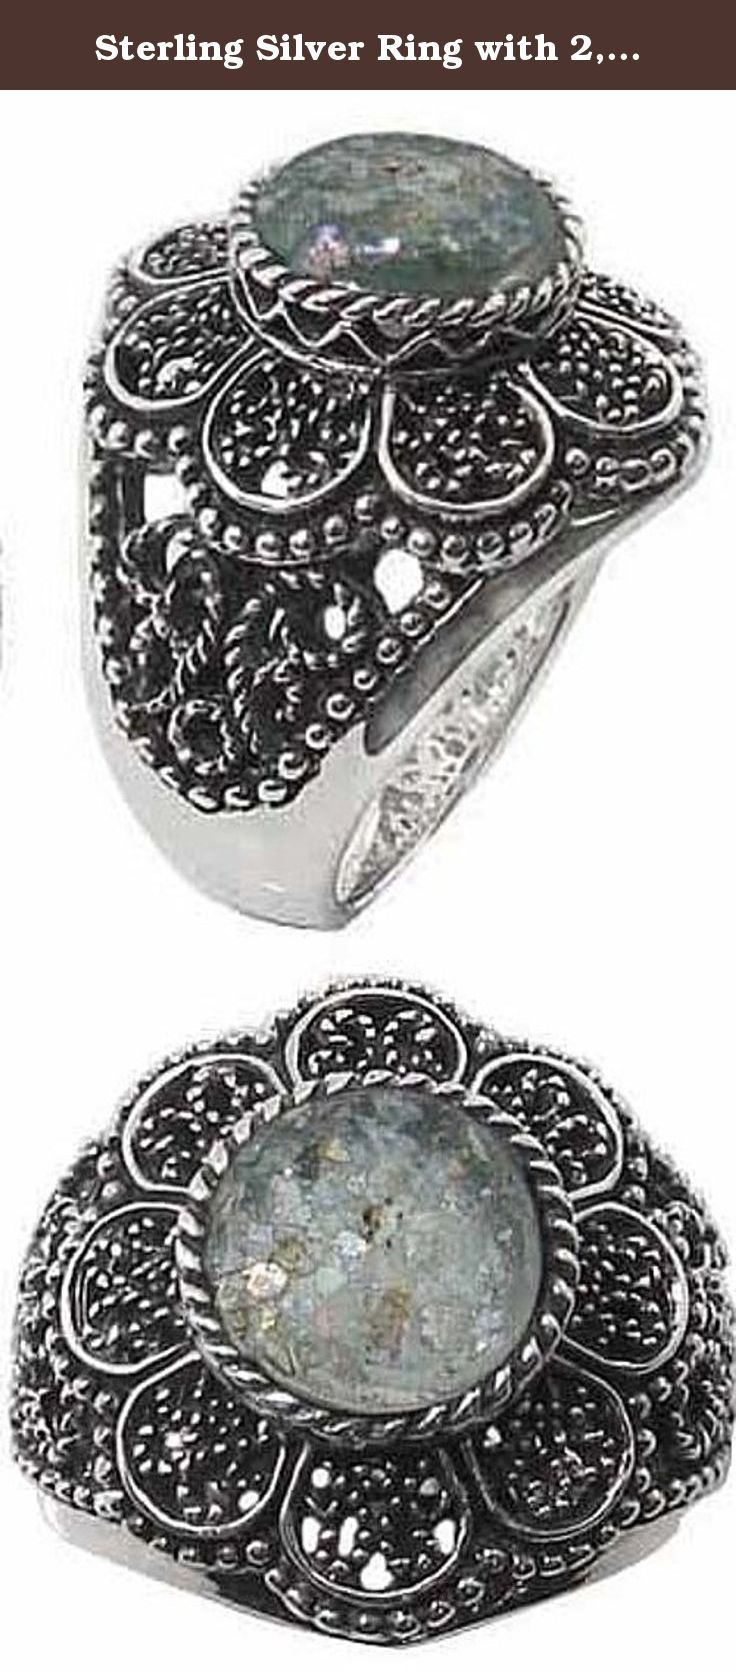 Sterling Silver Ring with 2,000 Year Old Antique Roman Glass (BTS-NRB4875/RG) - Size 9. Sterling silver Ring with 2,000 year old antique Roman Glass. Dimensions: 27.04x24.43 mm. ,RD 10.37 mm. 30 day satisfaction guarantee!.